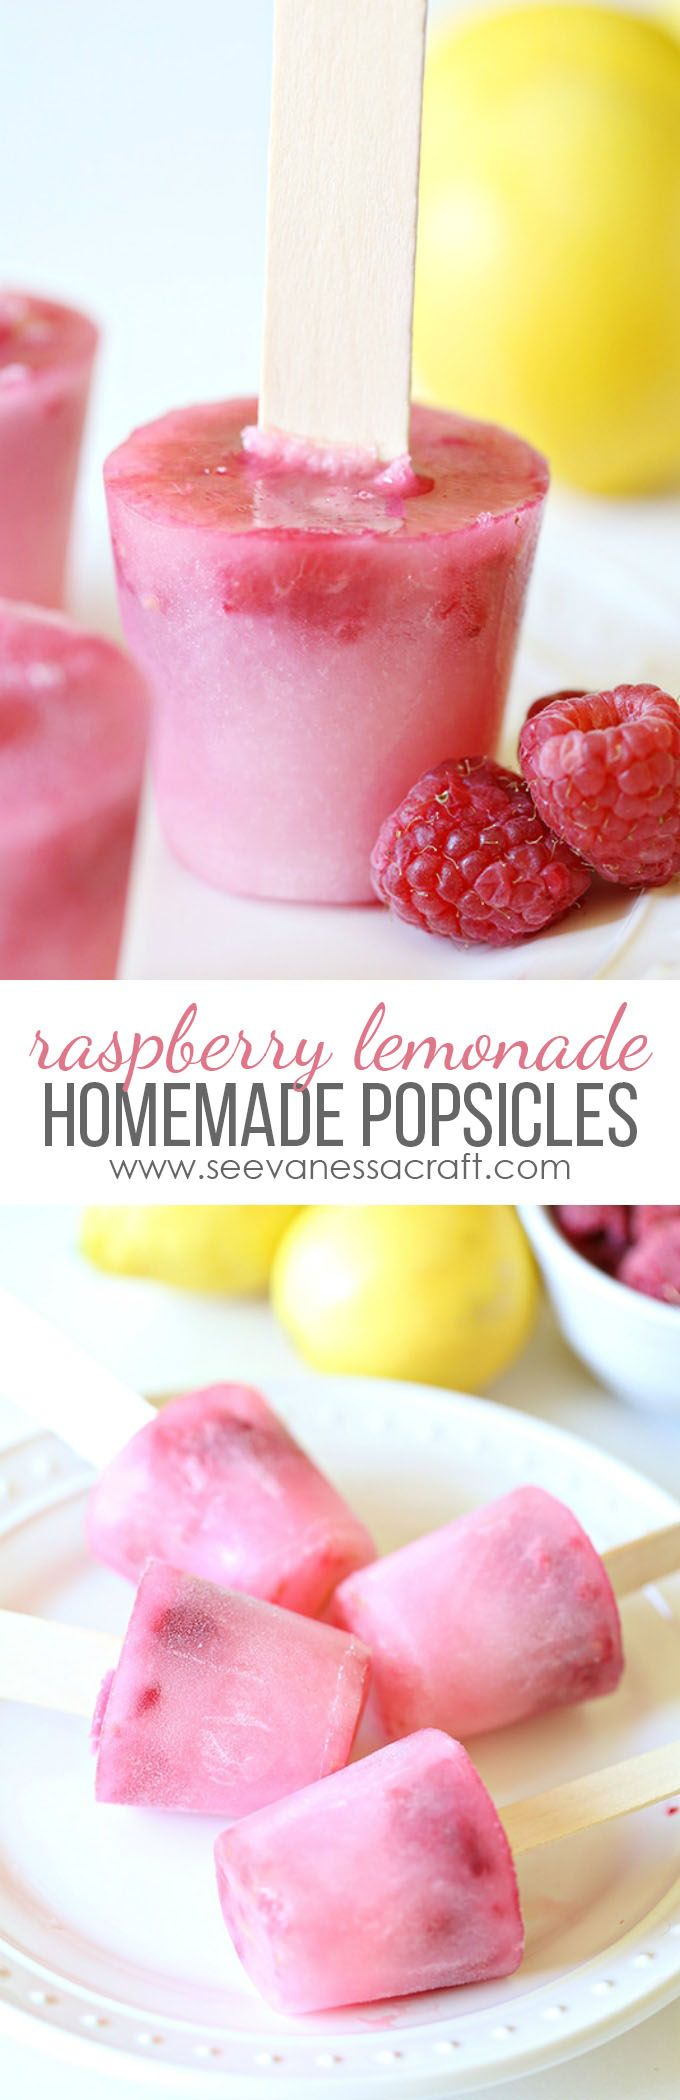 Homemade Raspberry Lemonade Popsicles - a yummy recipe for kids to make this summer!